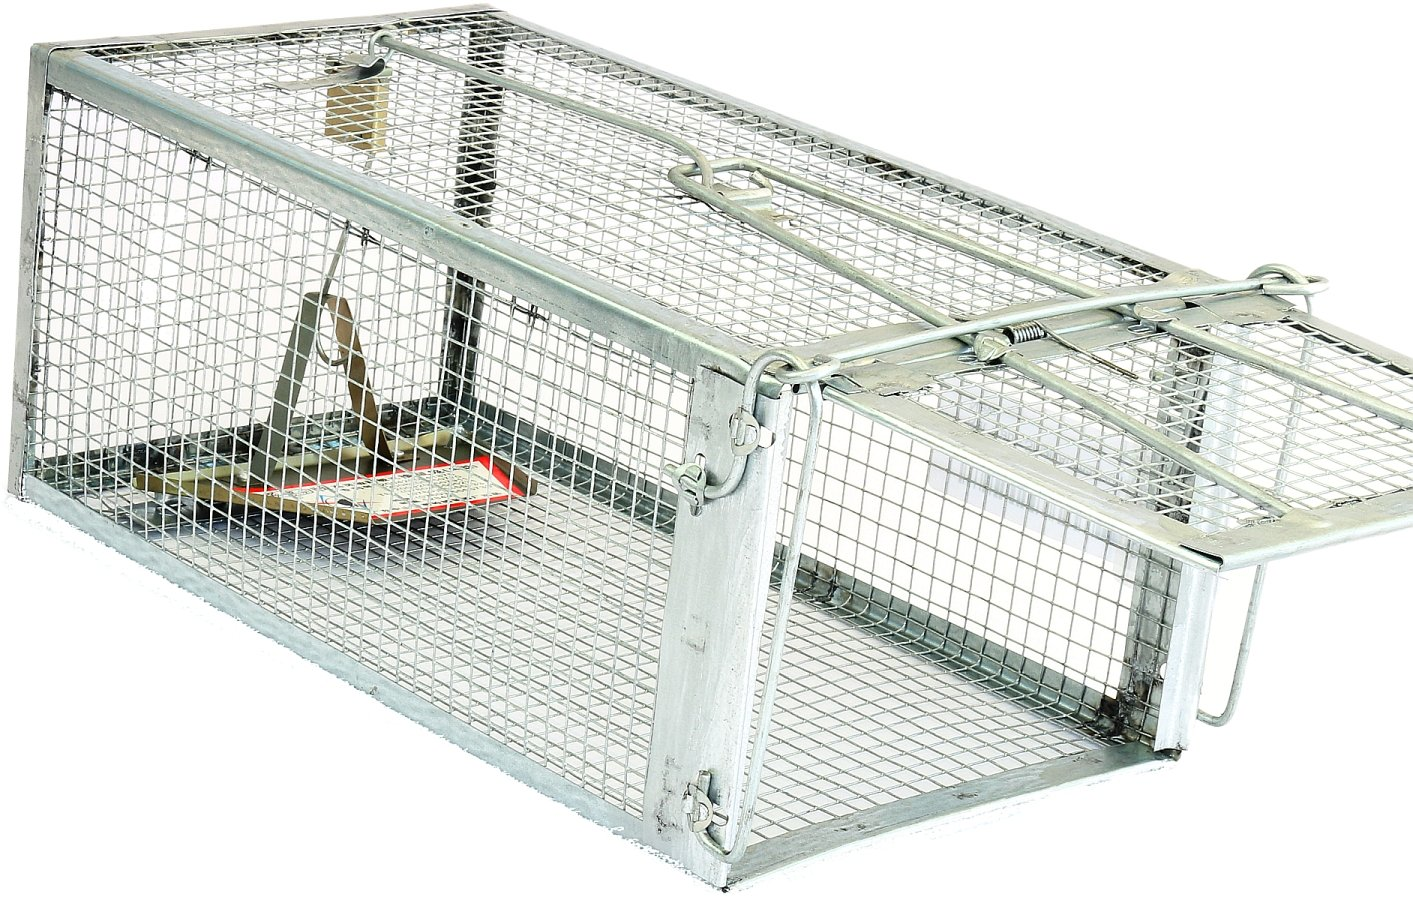 TheAtomicBarbie Rat Trap - Small Animal Humane Live Cage